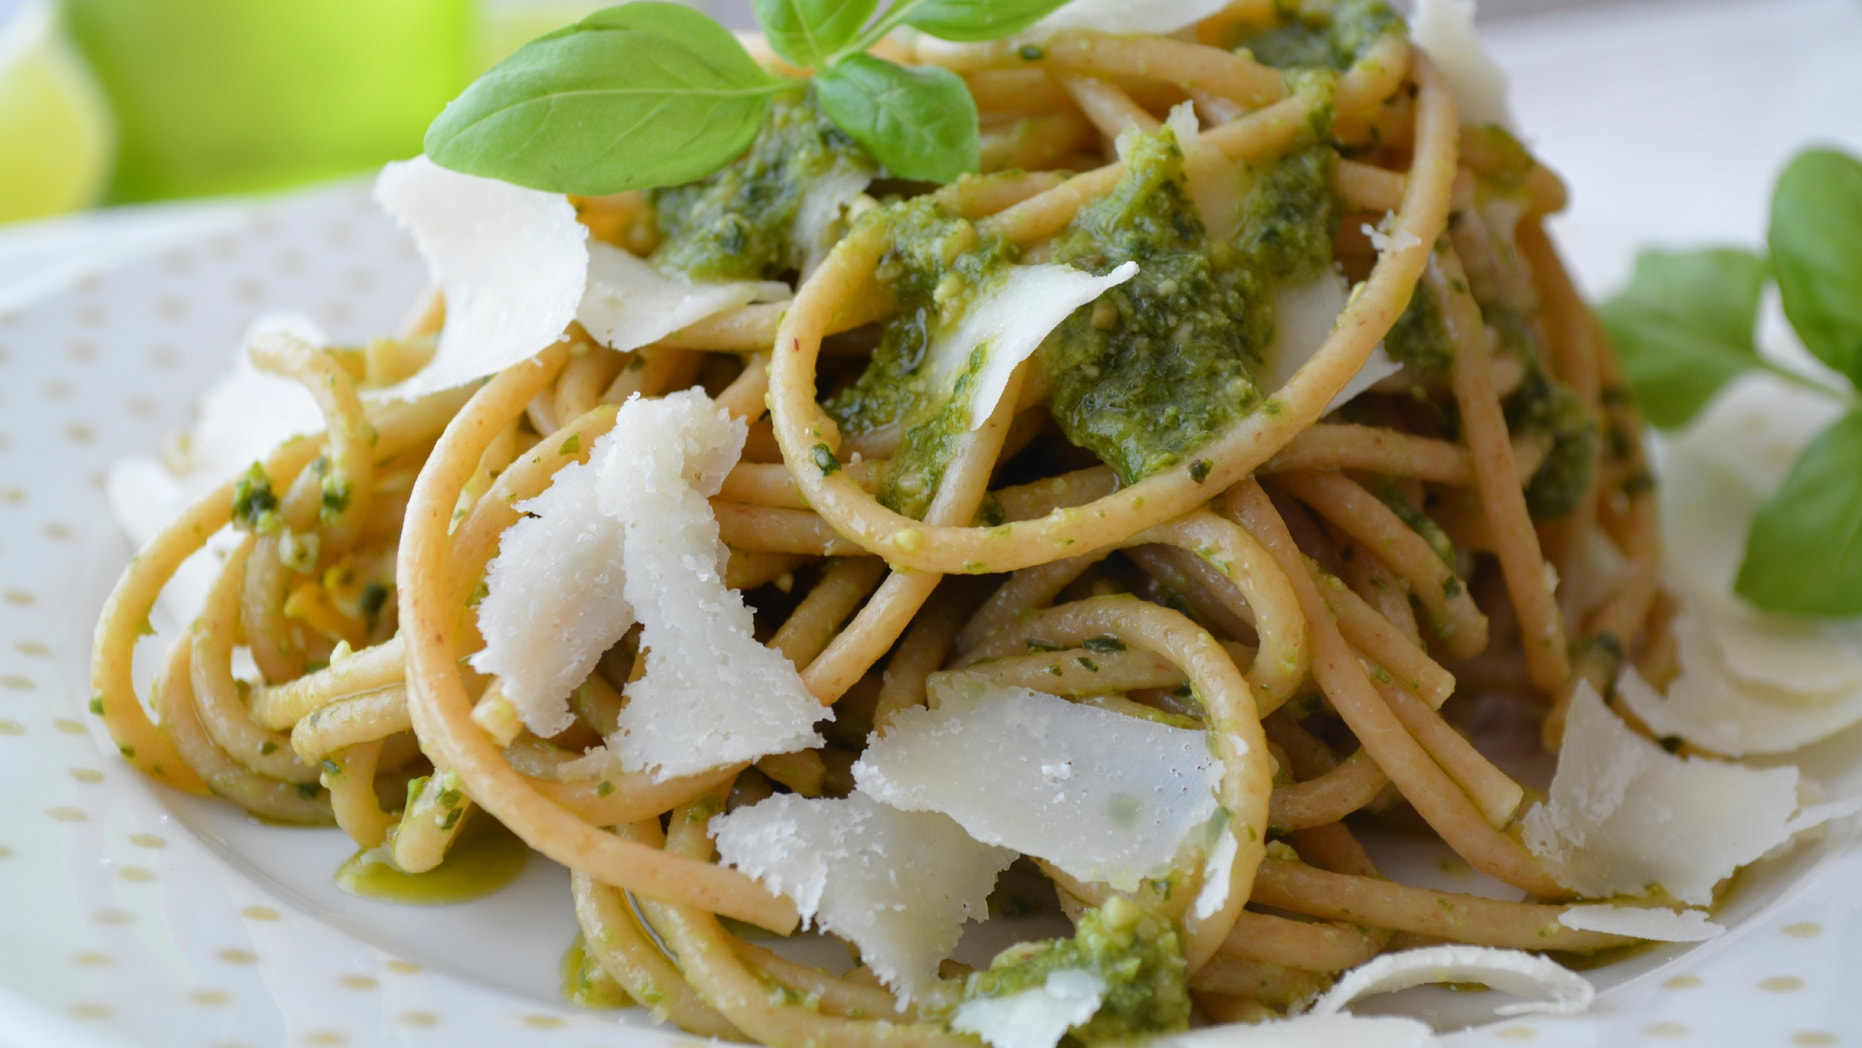 New research suggests a diet rich in fiber— like this whole wheat pasta with pesto— may support a healthy gut, which can in turn reduce disease risk and promote weight loss.